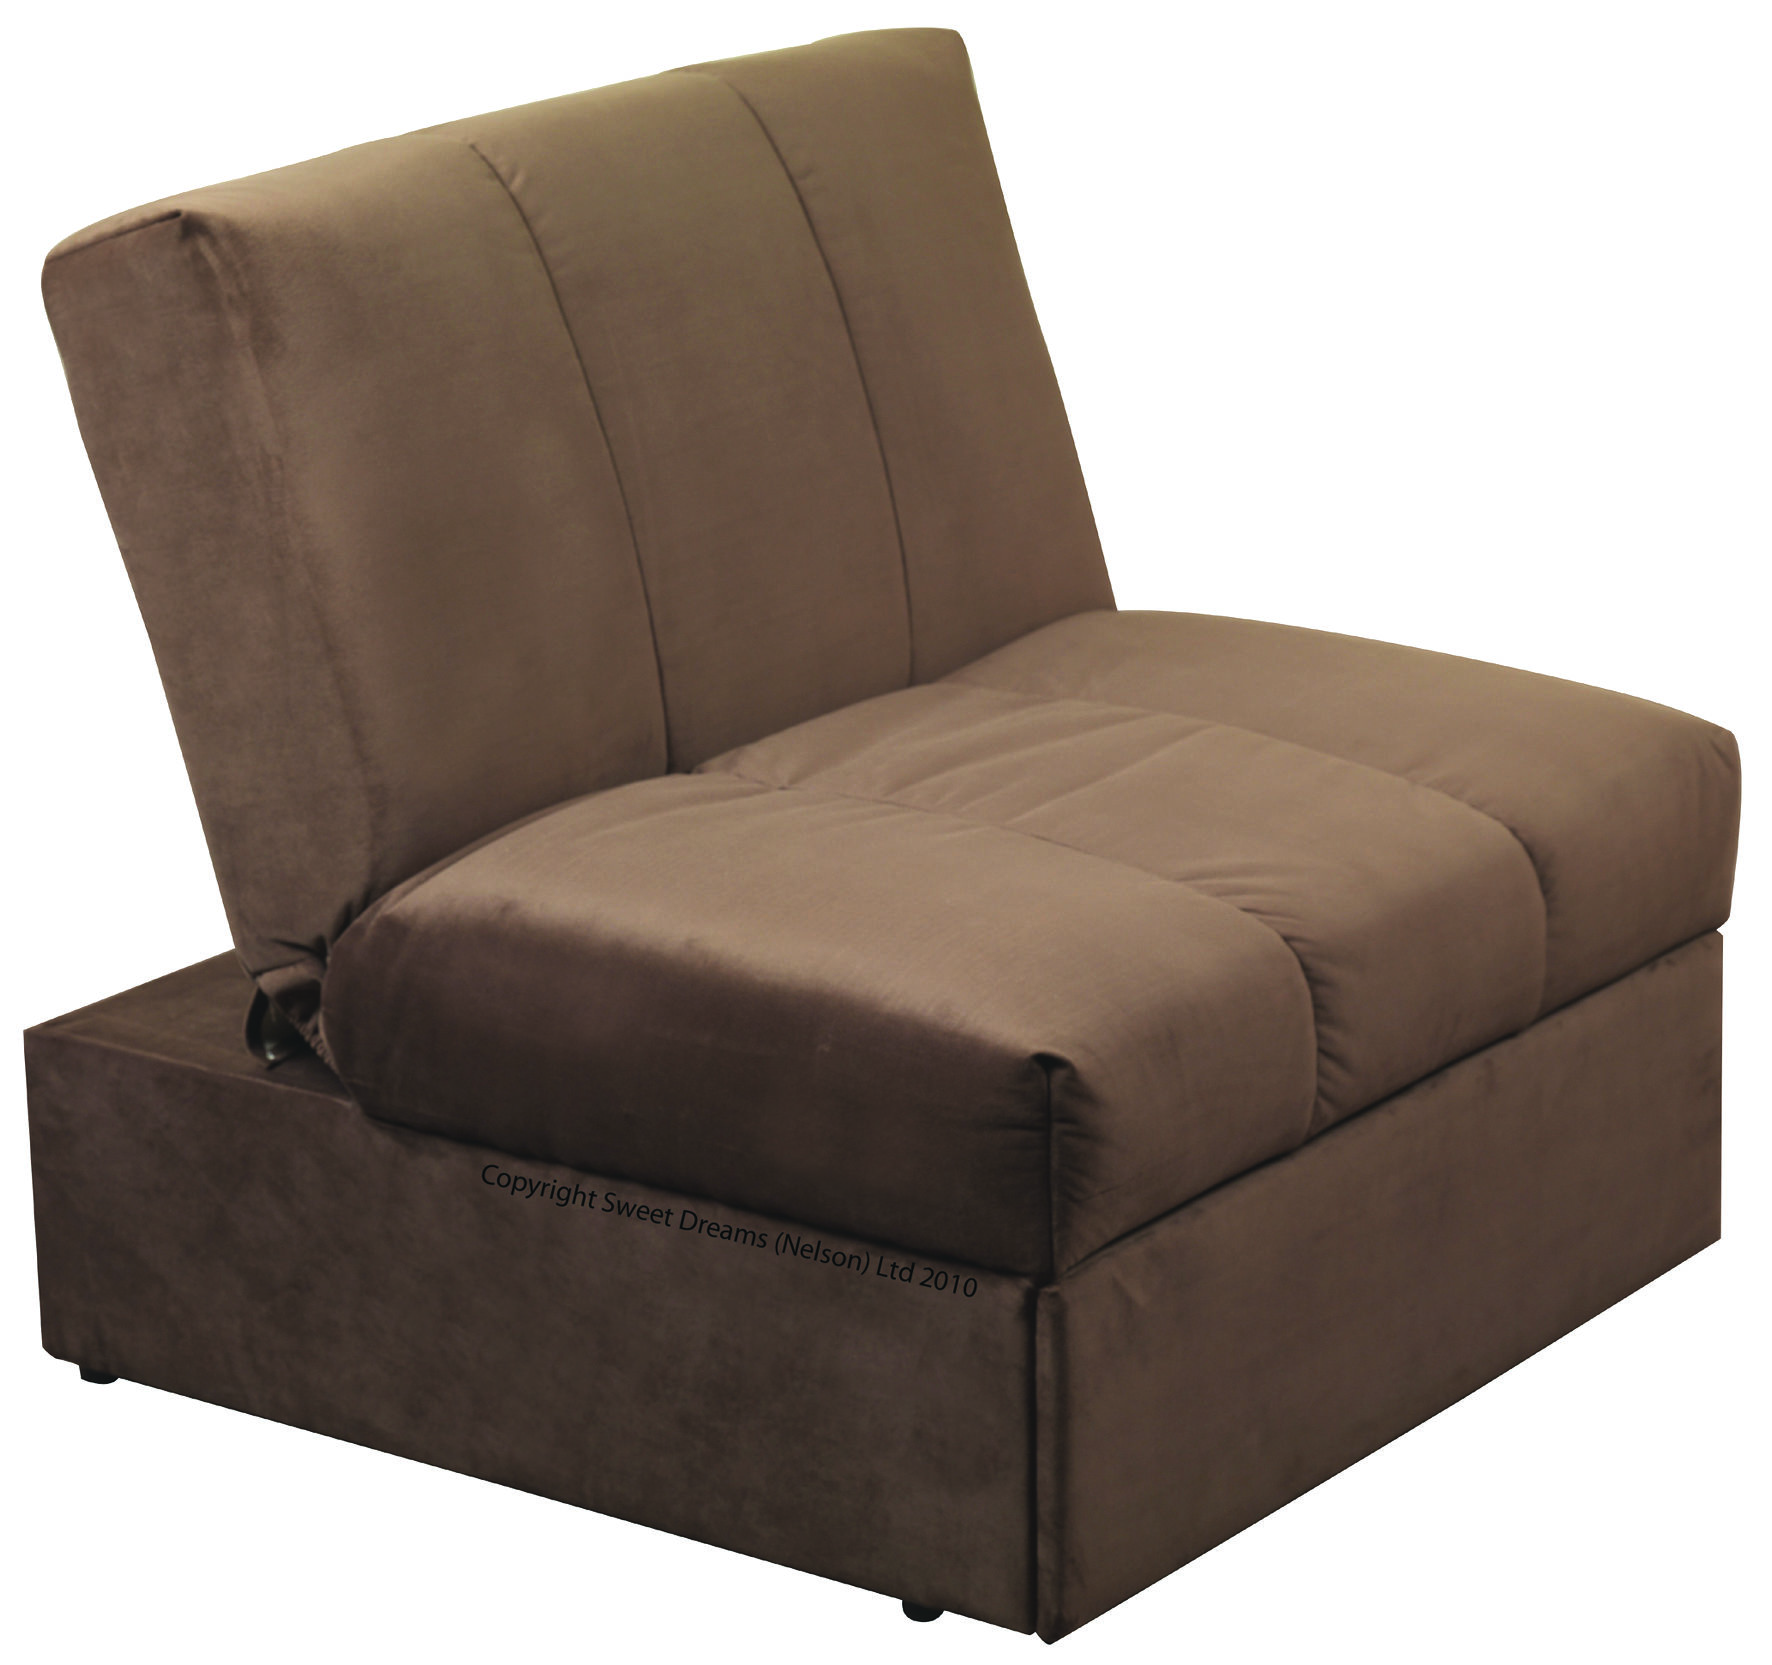 sensational sofa beds on sale online-Amazing sofa Beds On Sale Gallery